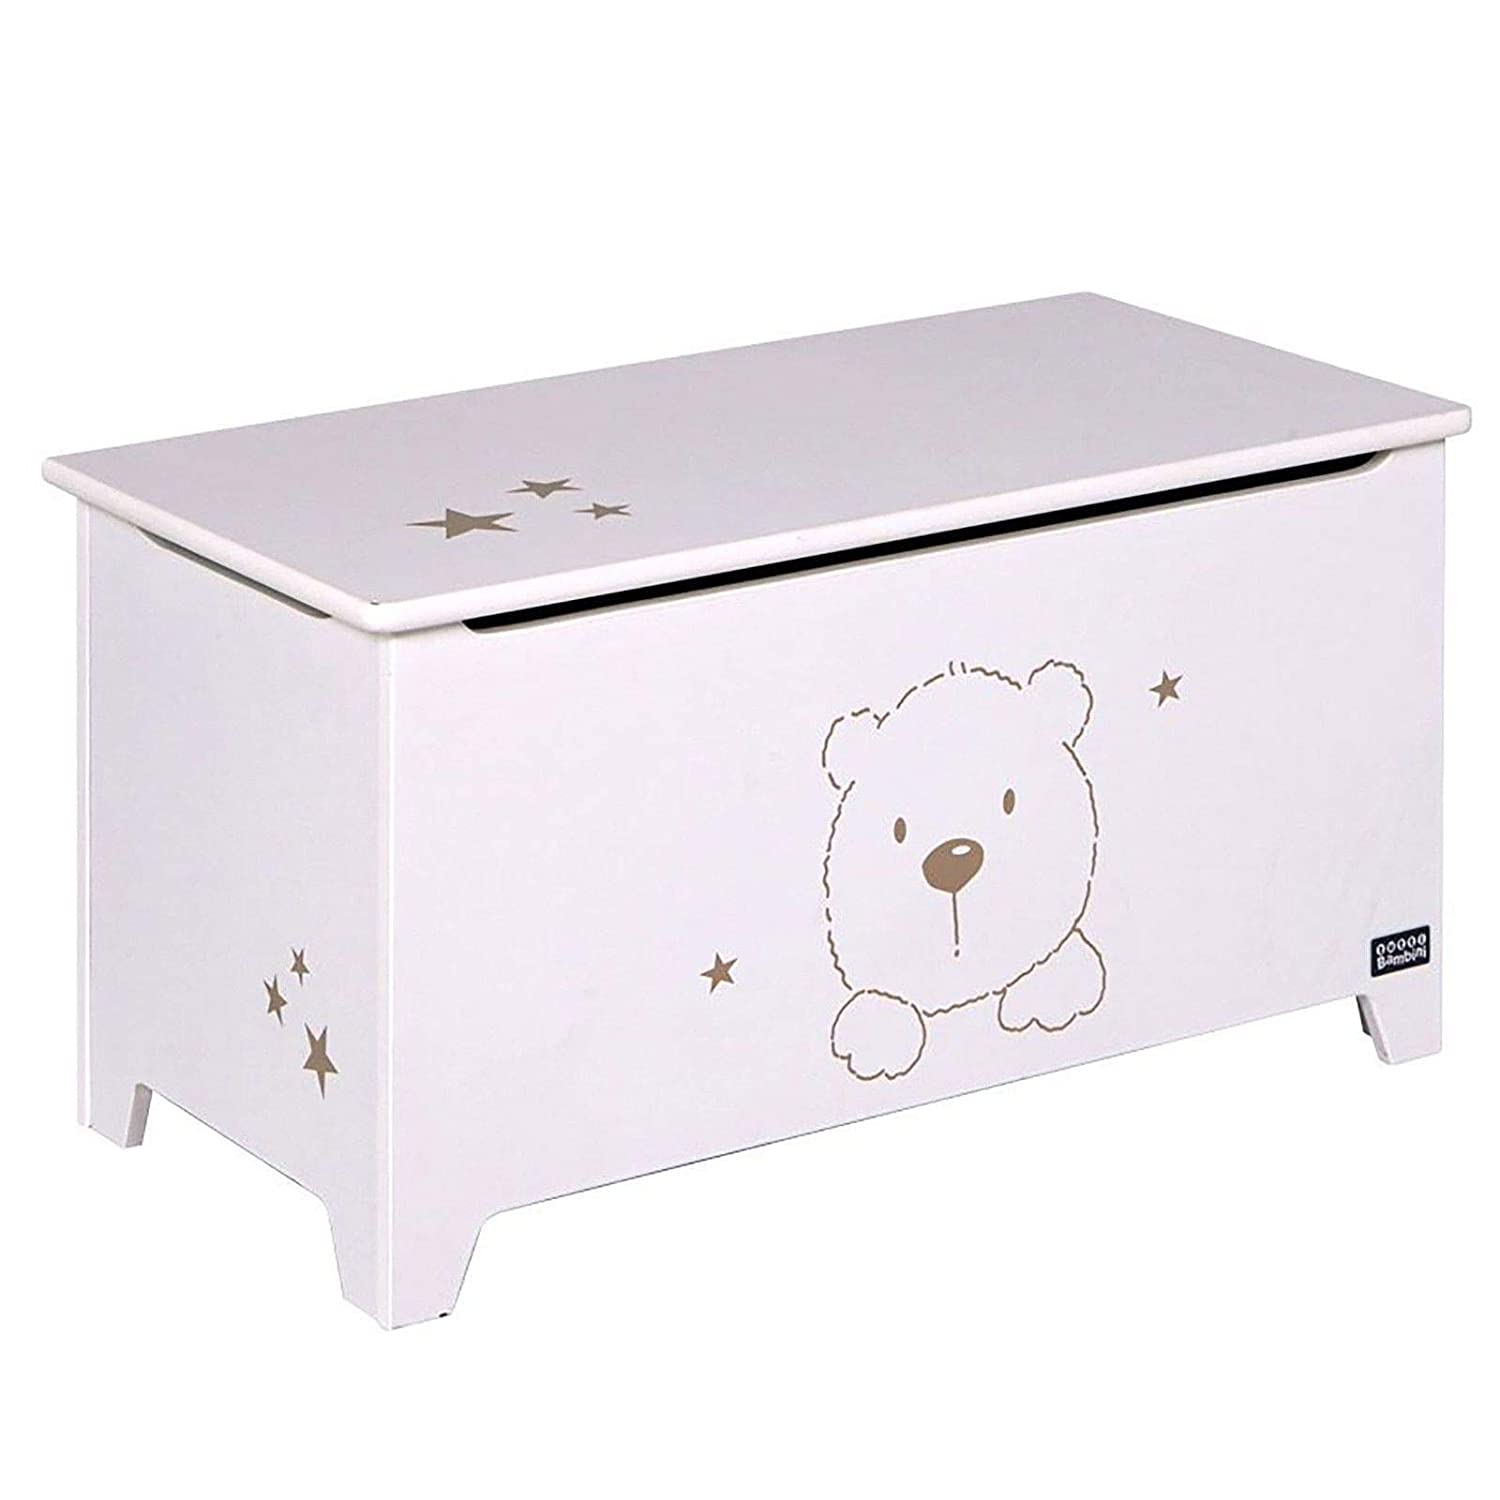 Tutti Bambini 3 Bears Nursery/Bedroom/Playroom Furniture Toy Box & Seat - Beech/White